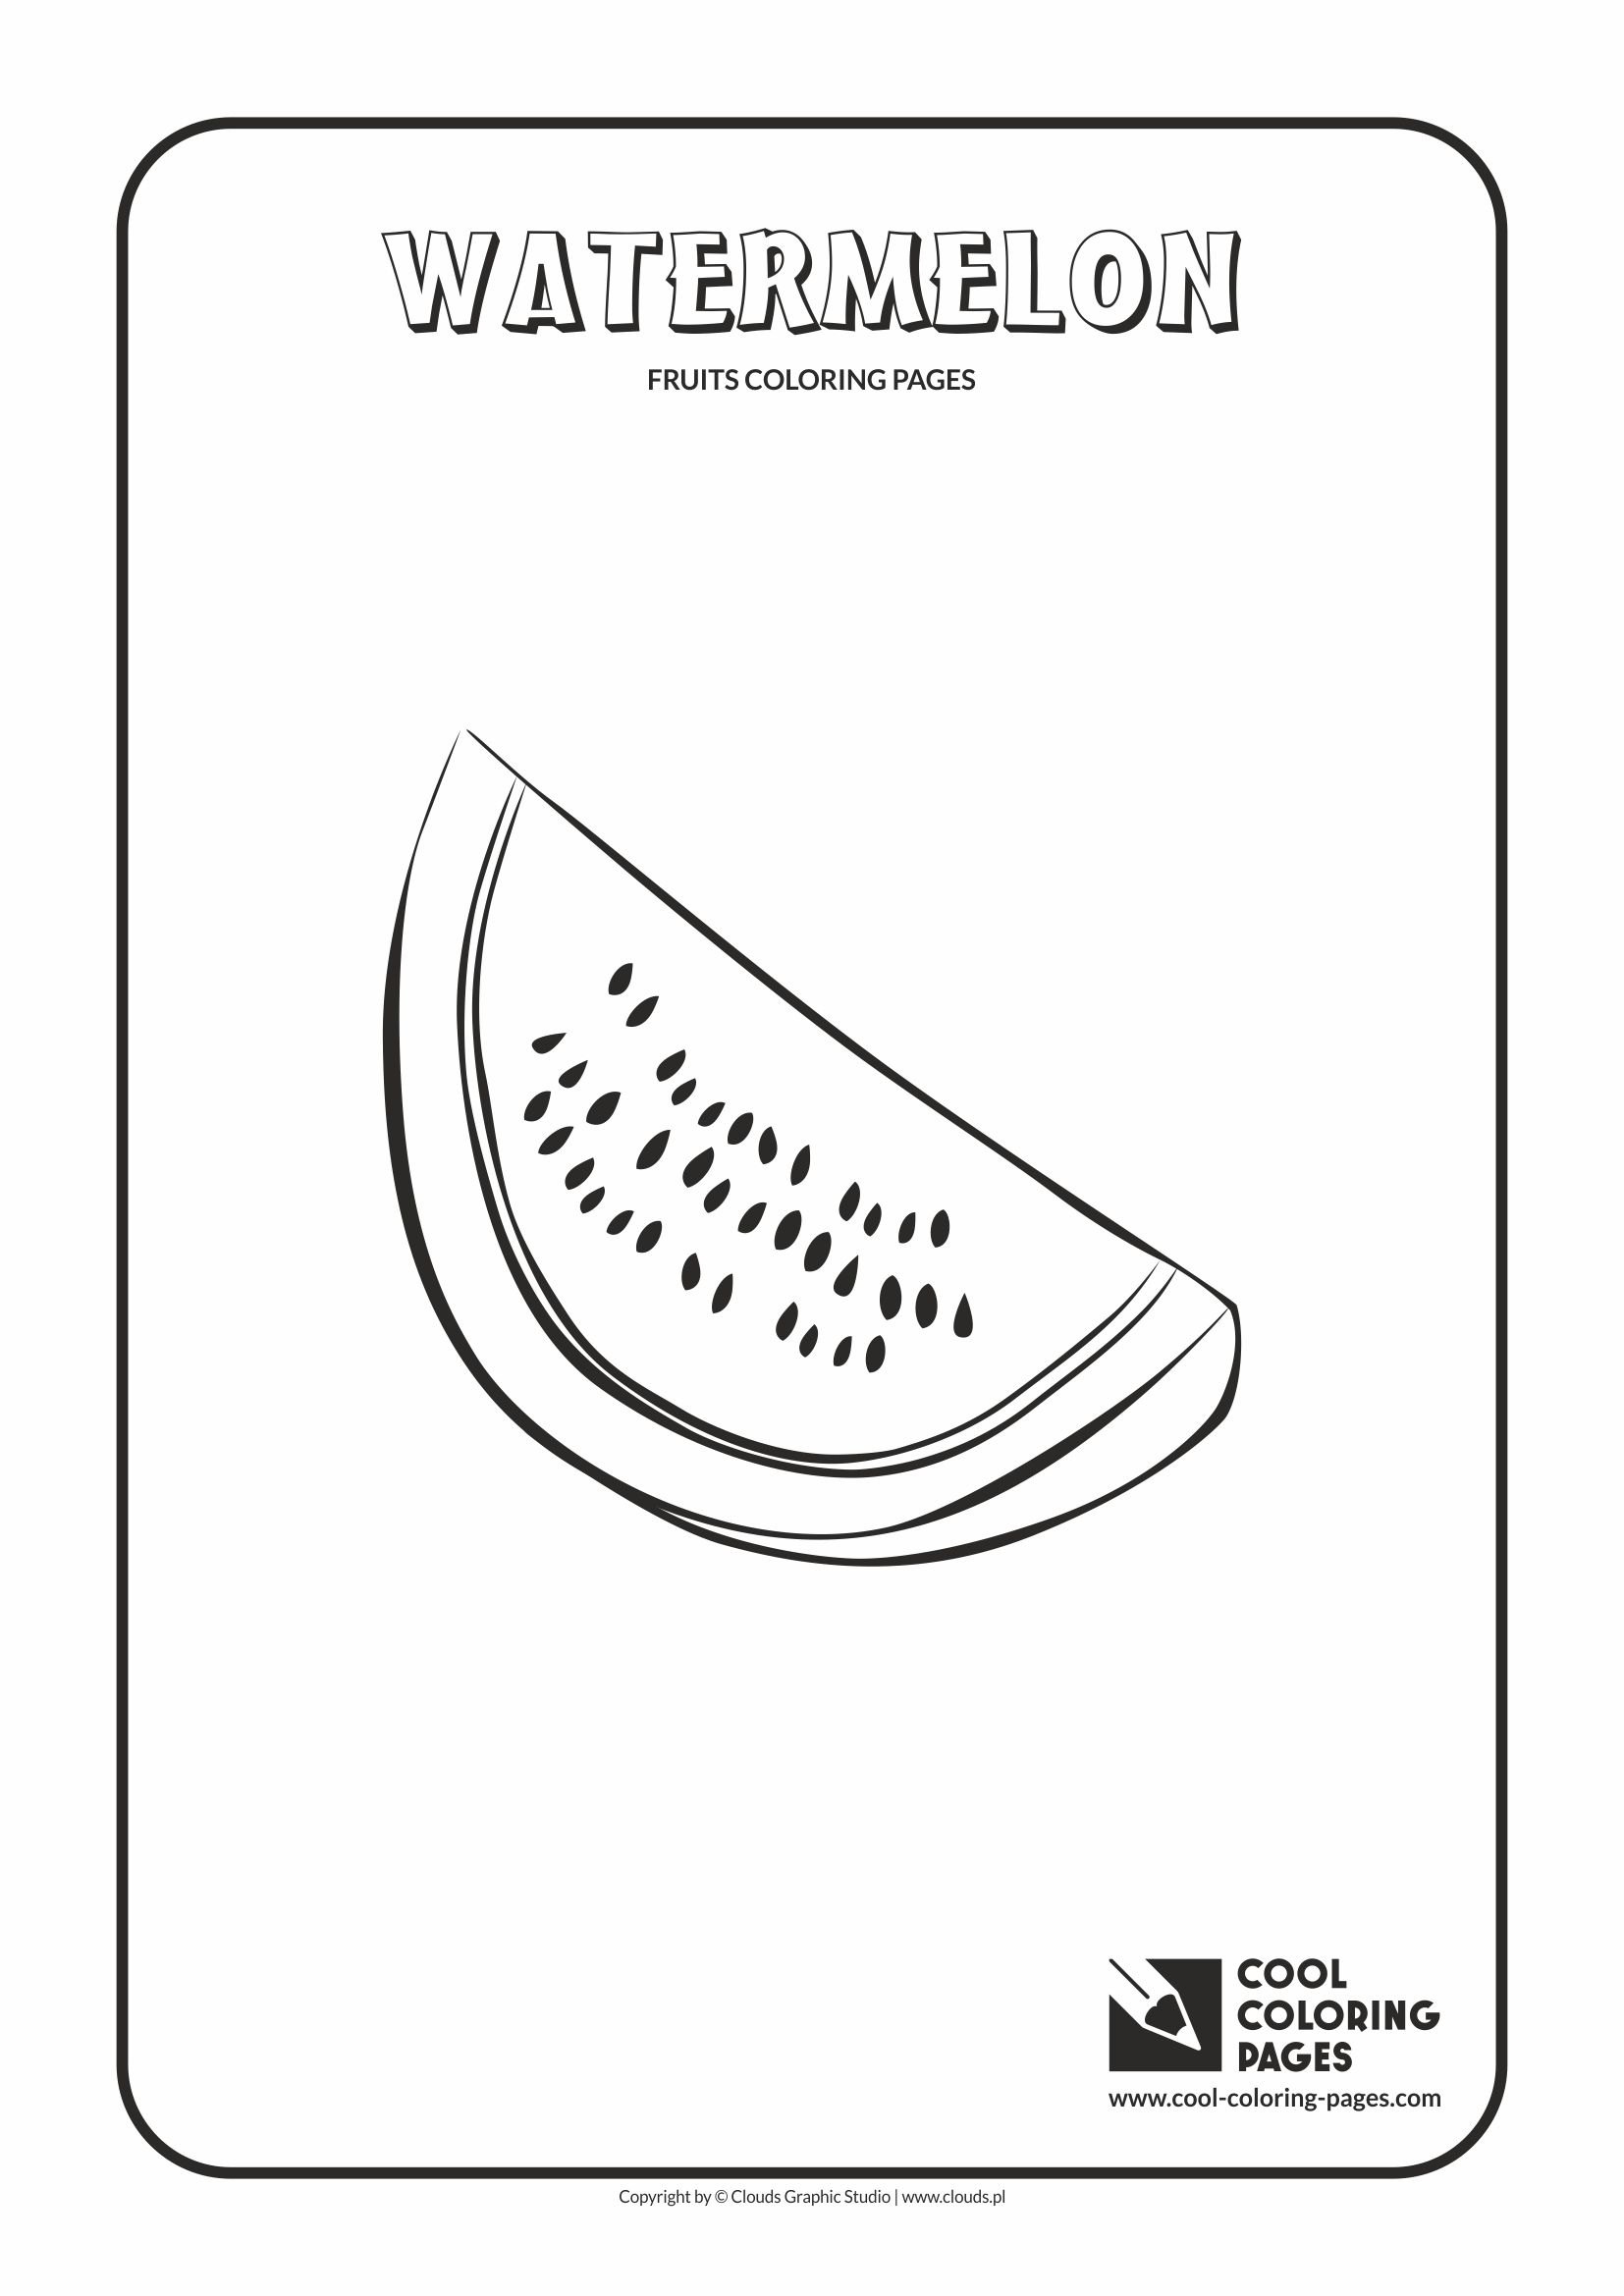 Watermelon coloring page  Cool Coloring Pages